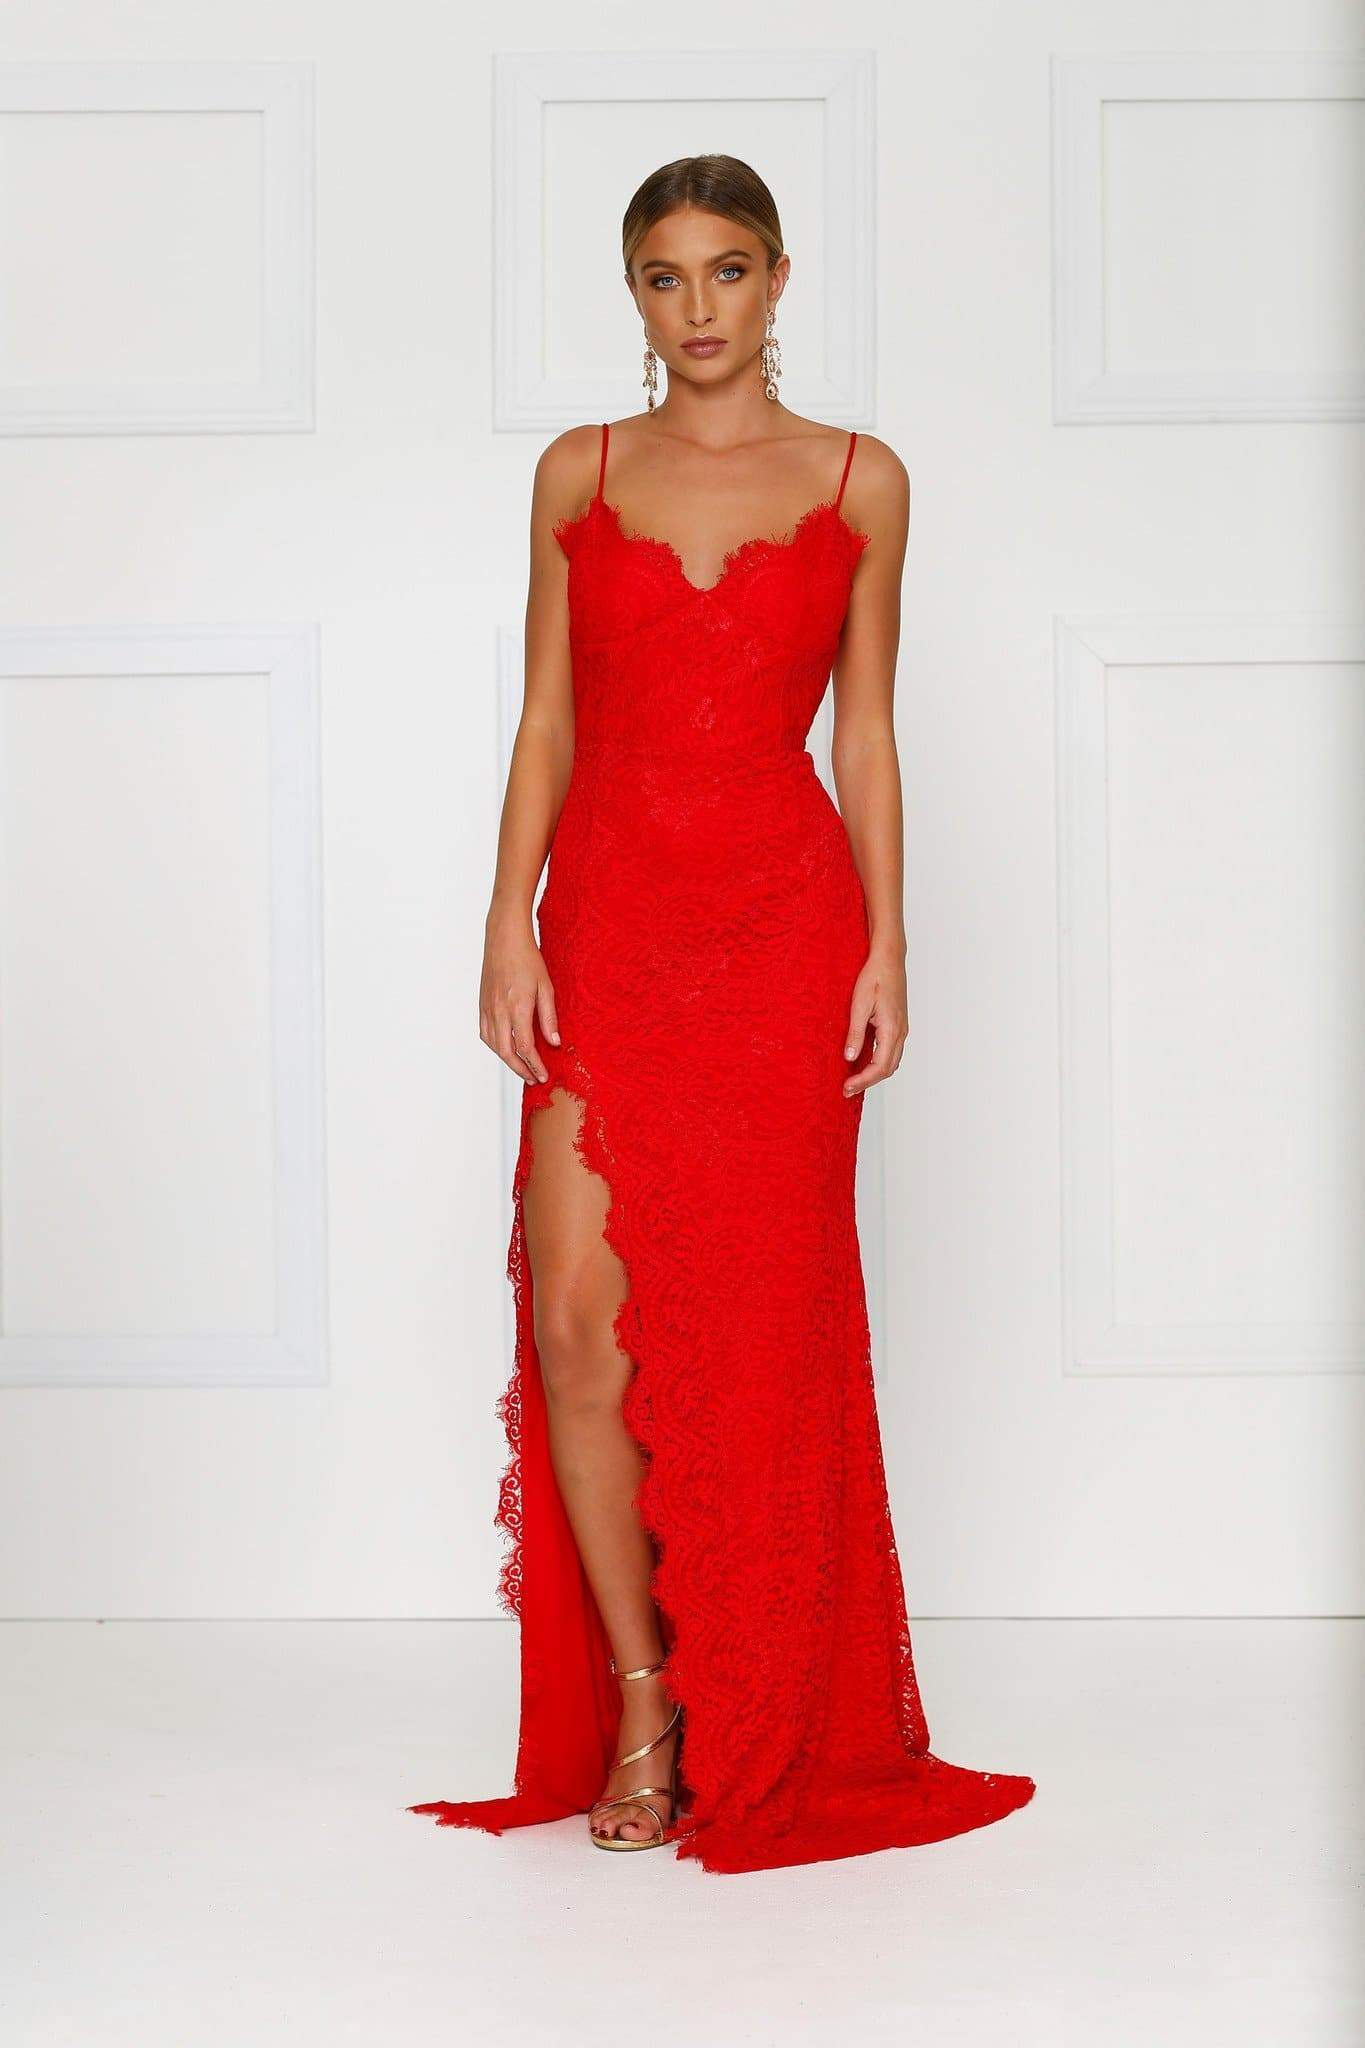 Sexy Red Lace Formal Dress Prom Dress with low back and leg split - Layali by Alamour The Label